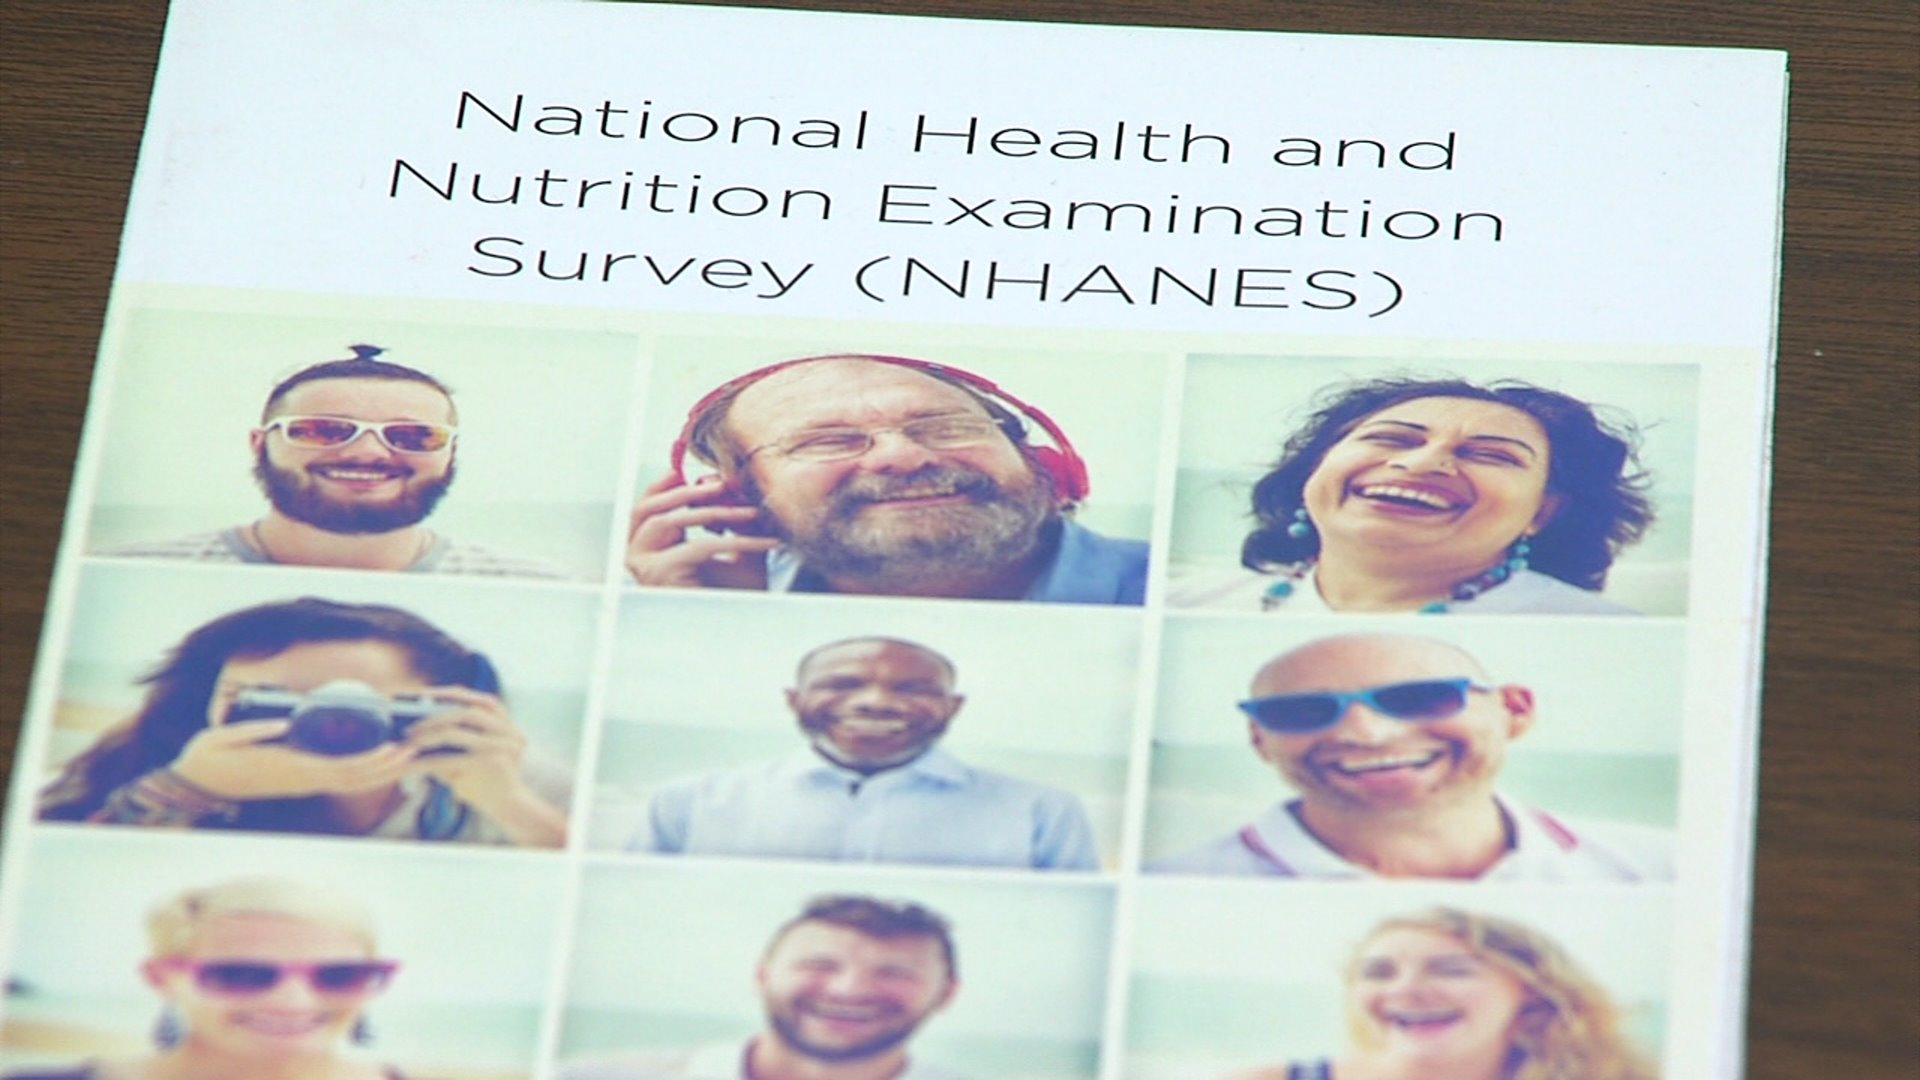 An important survey is being done right now in Davidson County that impacts what we know about people's health nationwide. It's called NHANES, or the National Health and Nutrition Examination Survey, and the CDC does it every year.